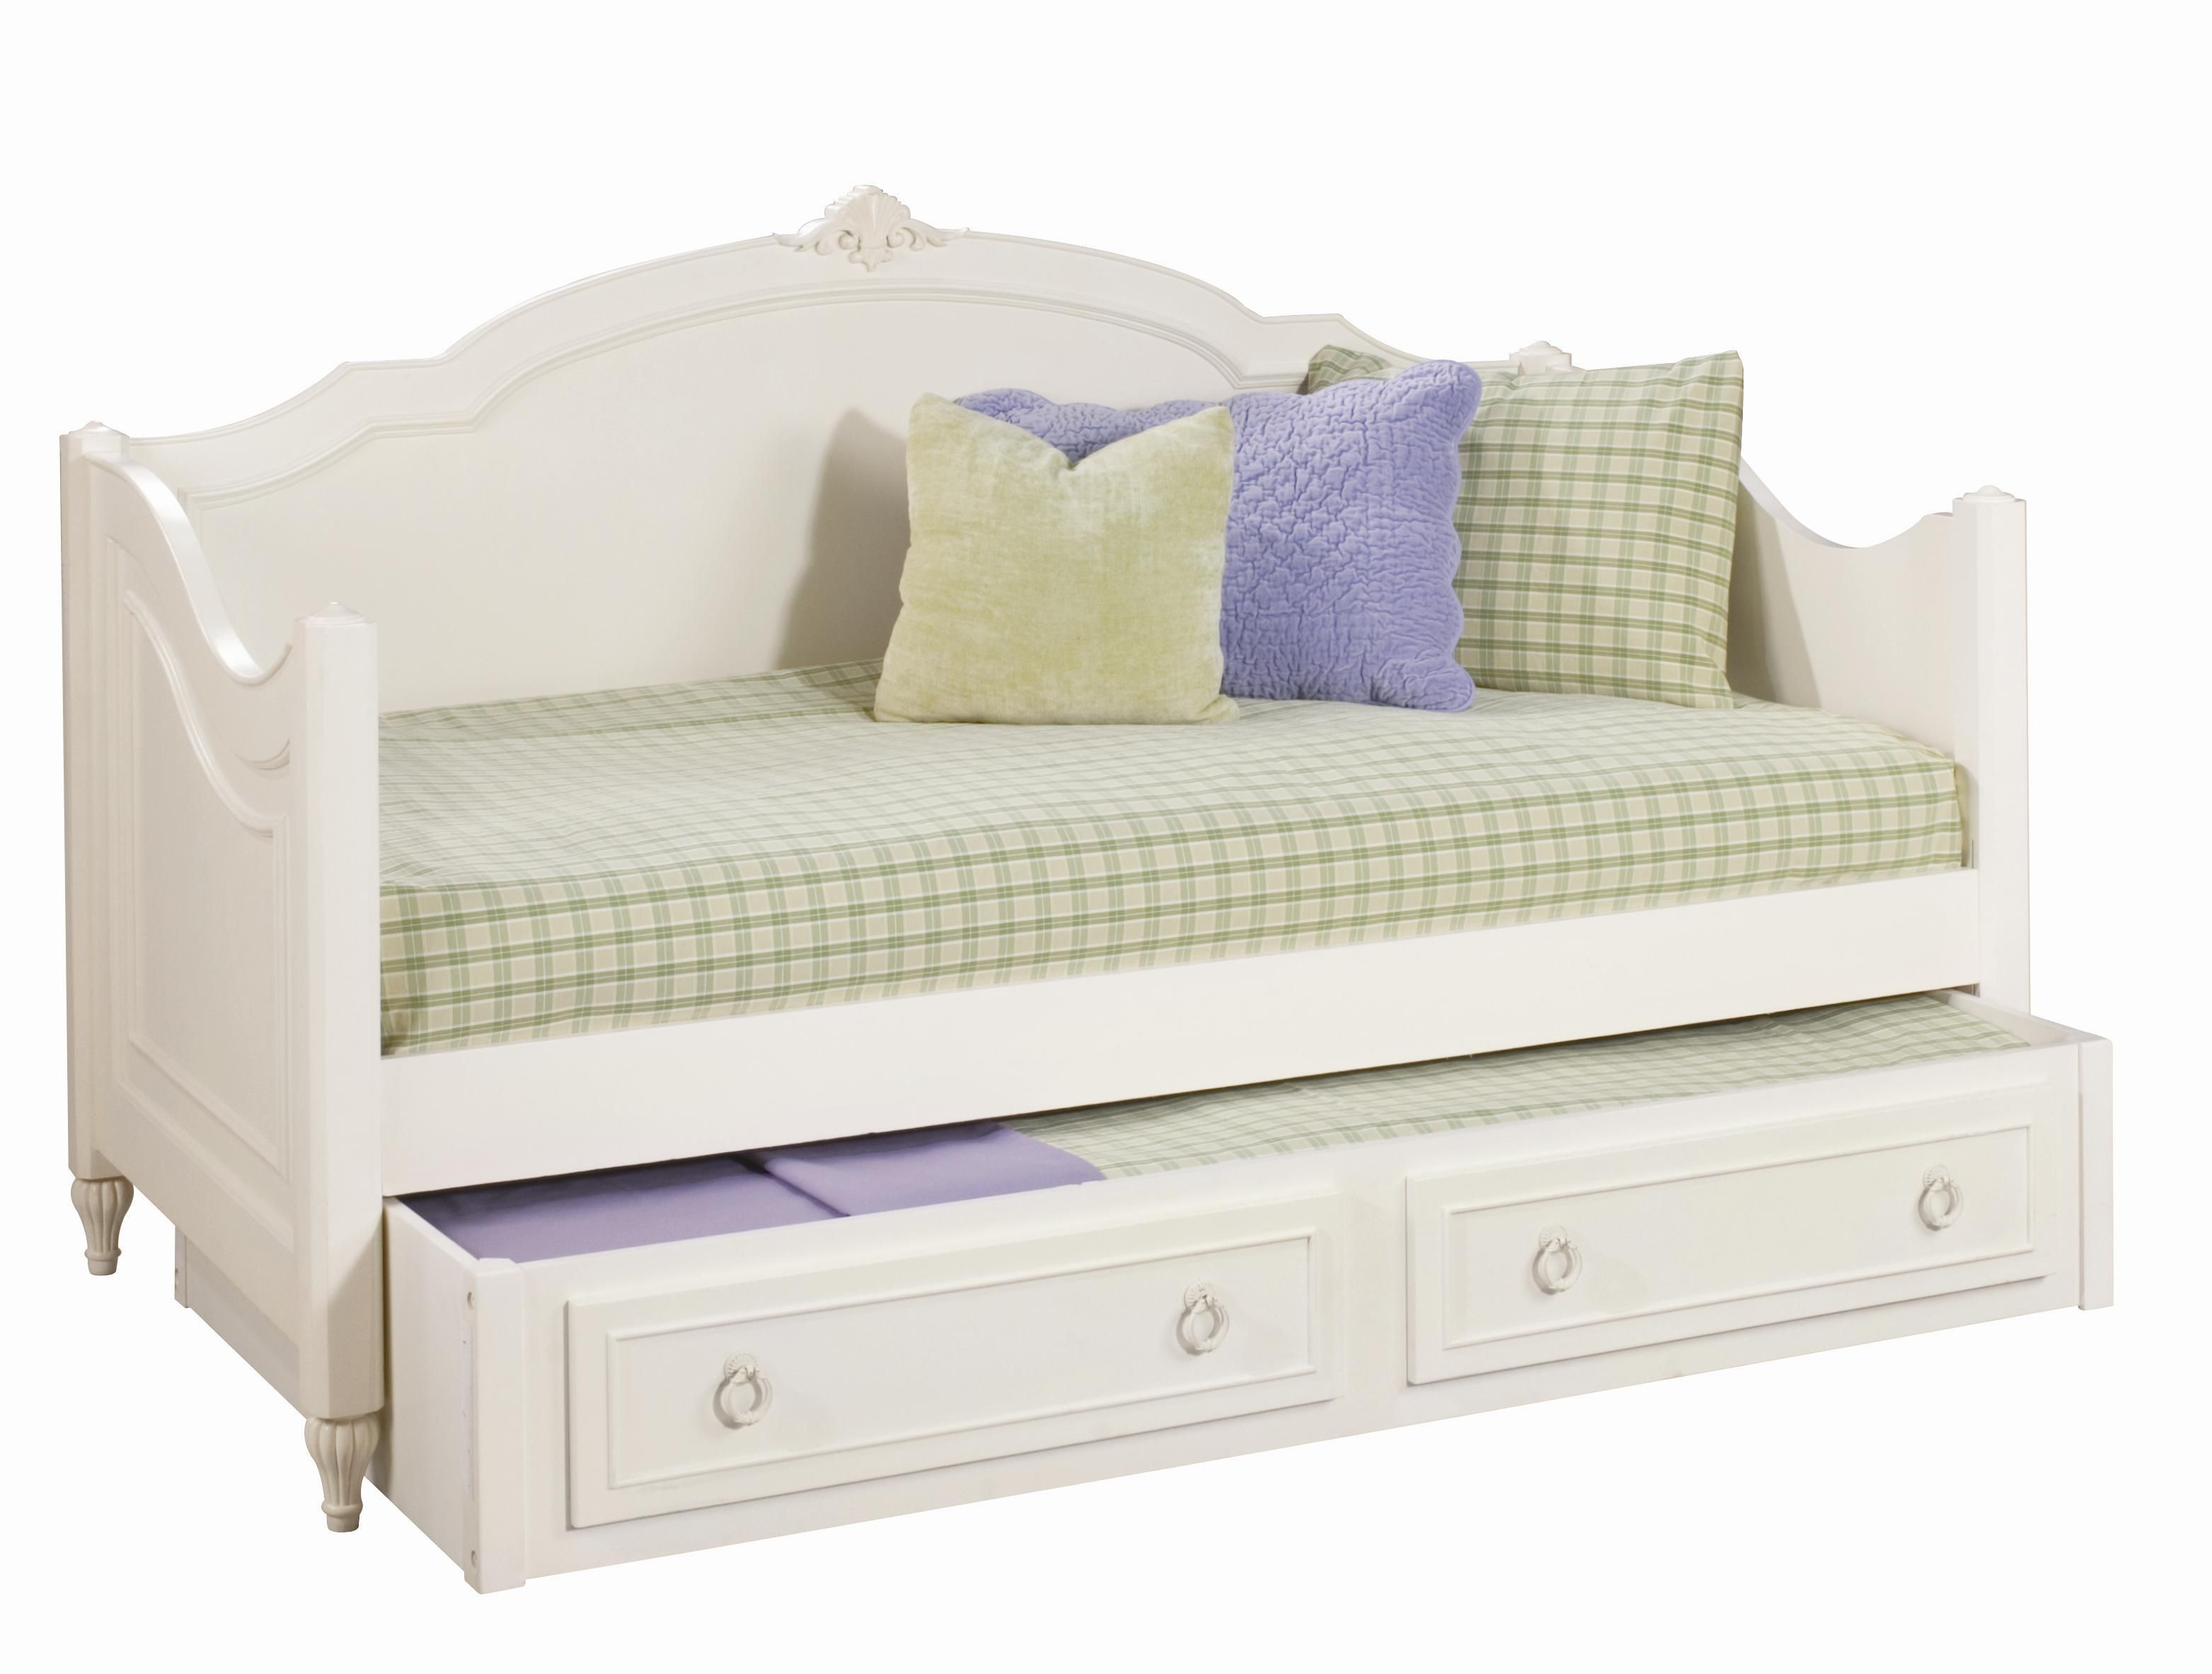 Ikea day beds hemnes home design ideas - Icon Of Ikea Twin Bed Frames